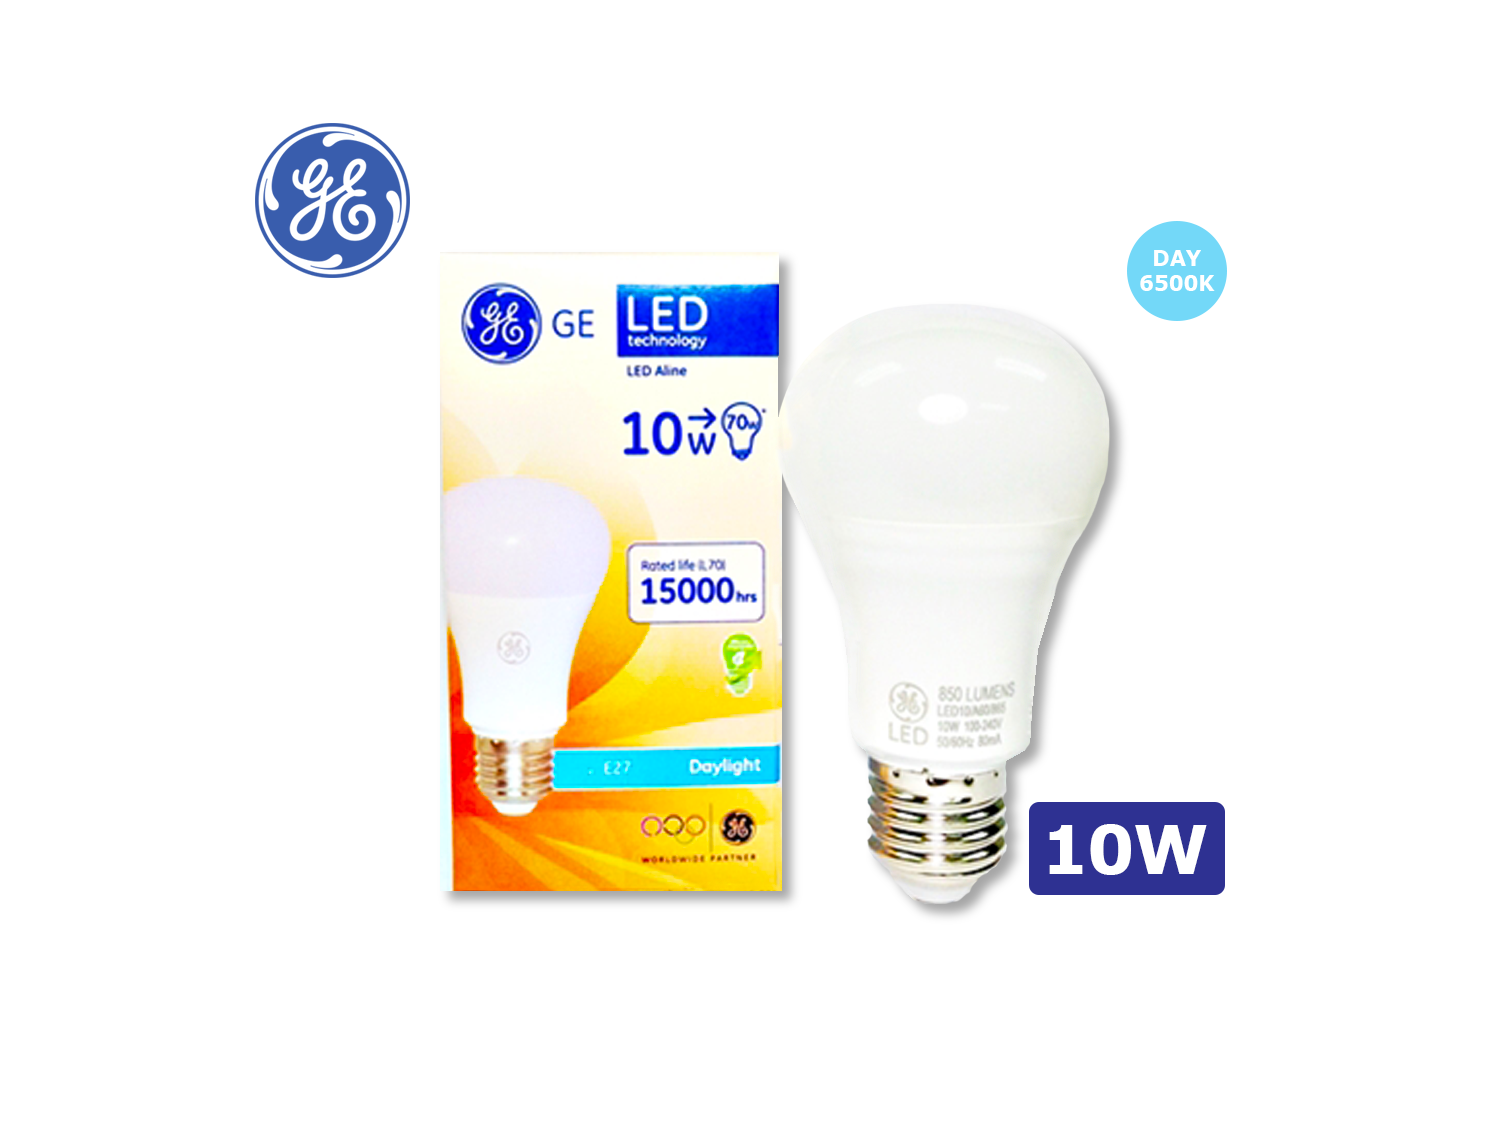 GE LED A60/10W/E27/6500K(Daylight)/100-240V ; SKU : 62167BT, LED10/A60/865/100-240V/E27